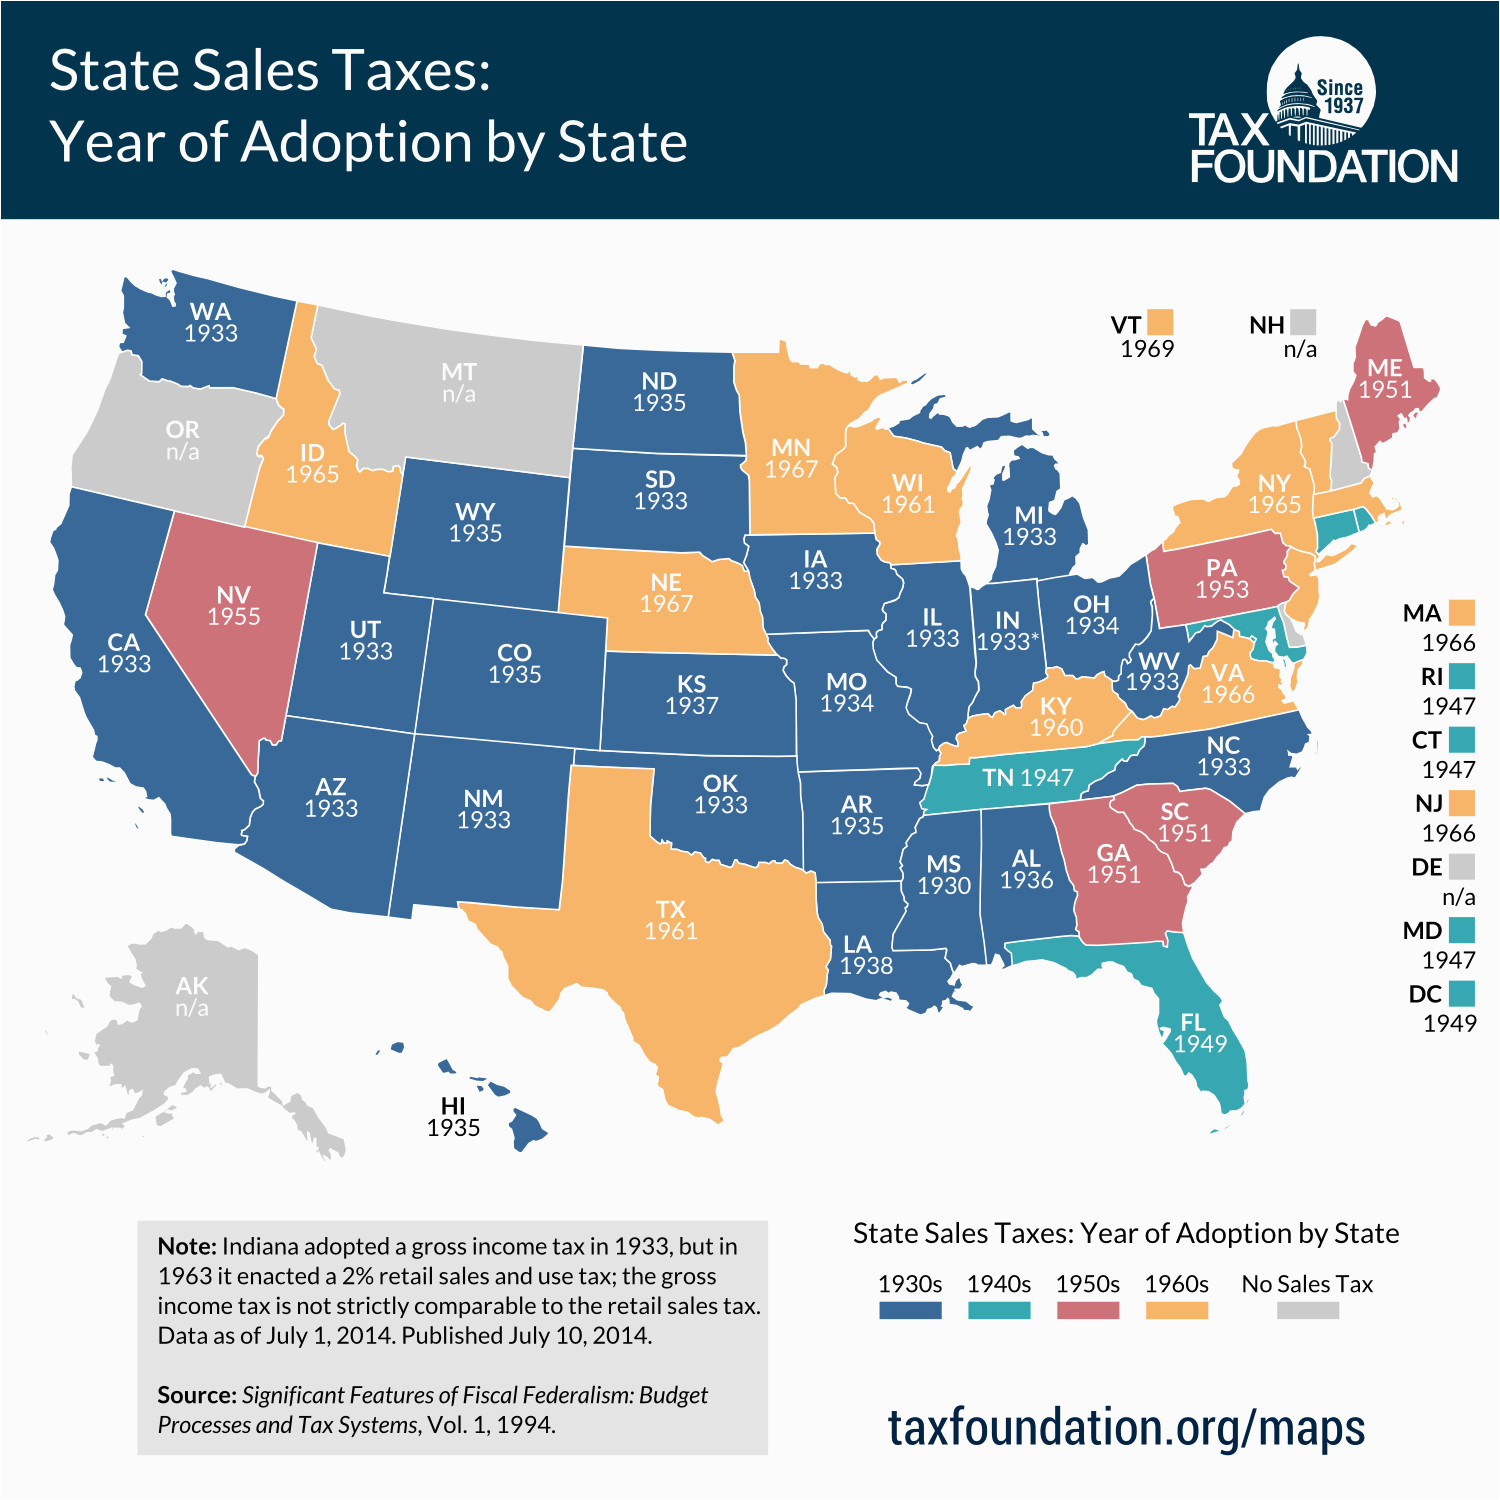 Sales Tax Map Ohio State Sales Tax Ohio State Sales Tax Map ... on gasoline tax map, california sales tax map, cigarette tax by state map, wa state sales tax map, new york state county map, estate tax by state map, religion by state map, minimum wage by state map, concealed carry reciprocity map, sales tax ohio map, no sales tax states map, 2012 electoral map, state income tax map, property tax by state map, business tax by state map, blue map, racism by state map, gas tax map, educational attainment by state map, sales tax indiana map,